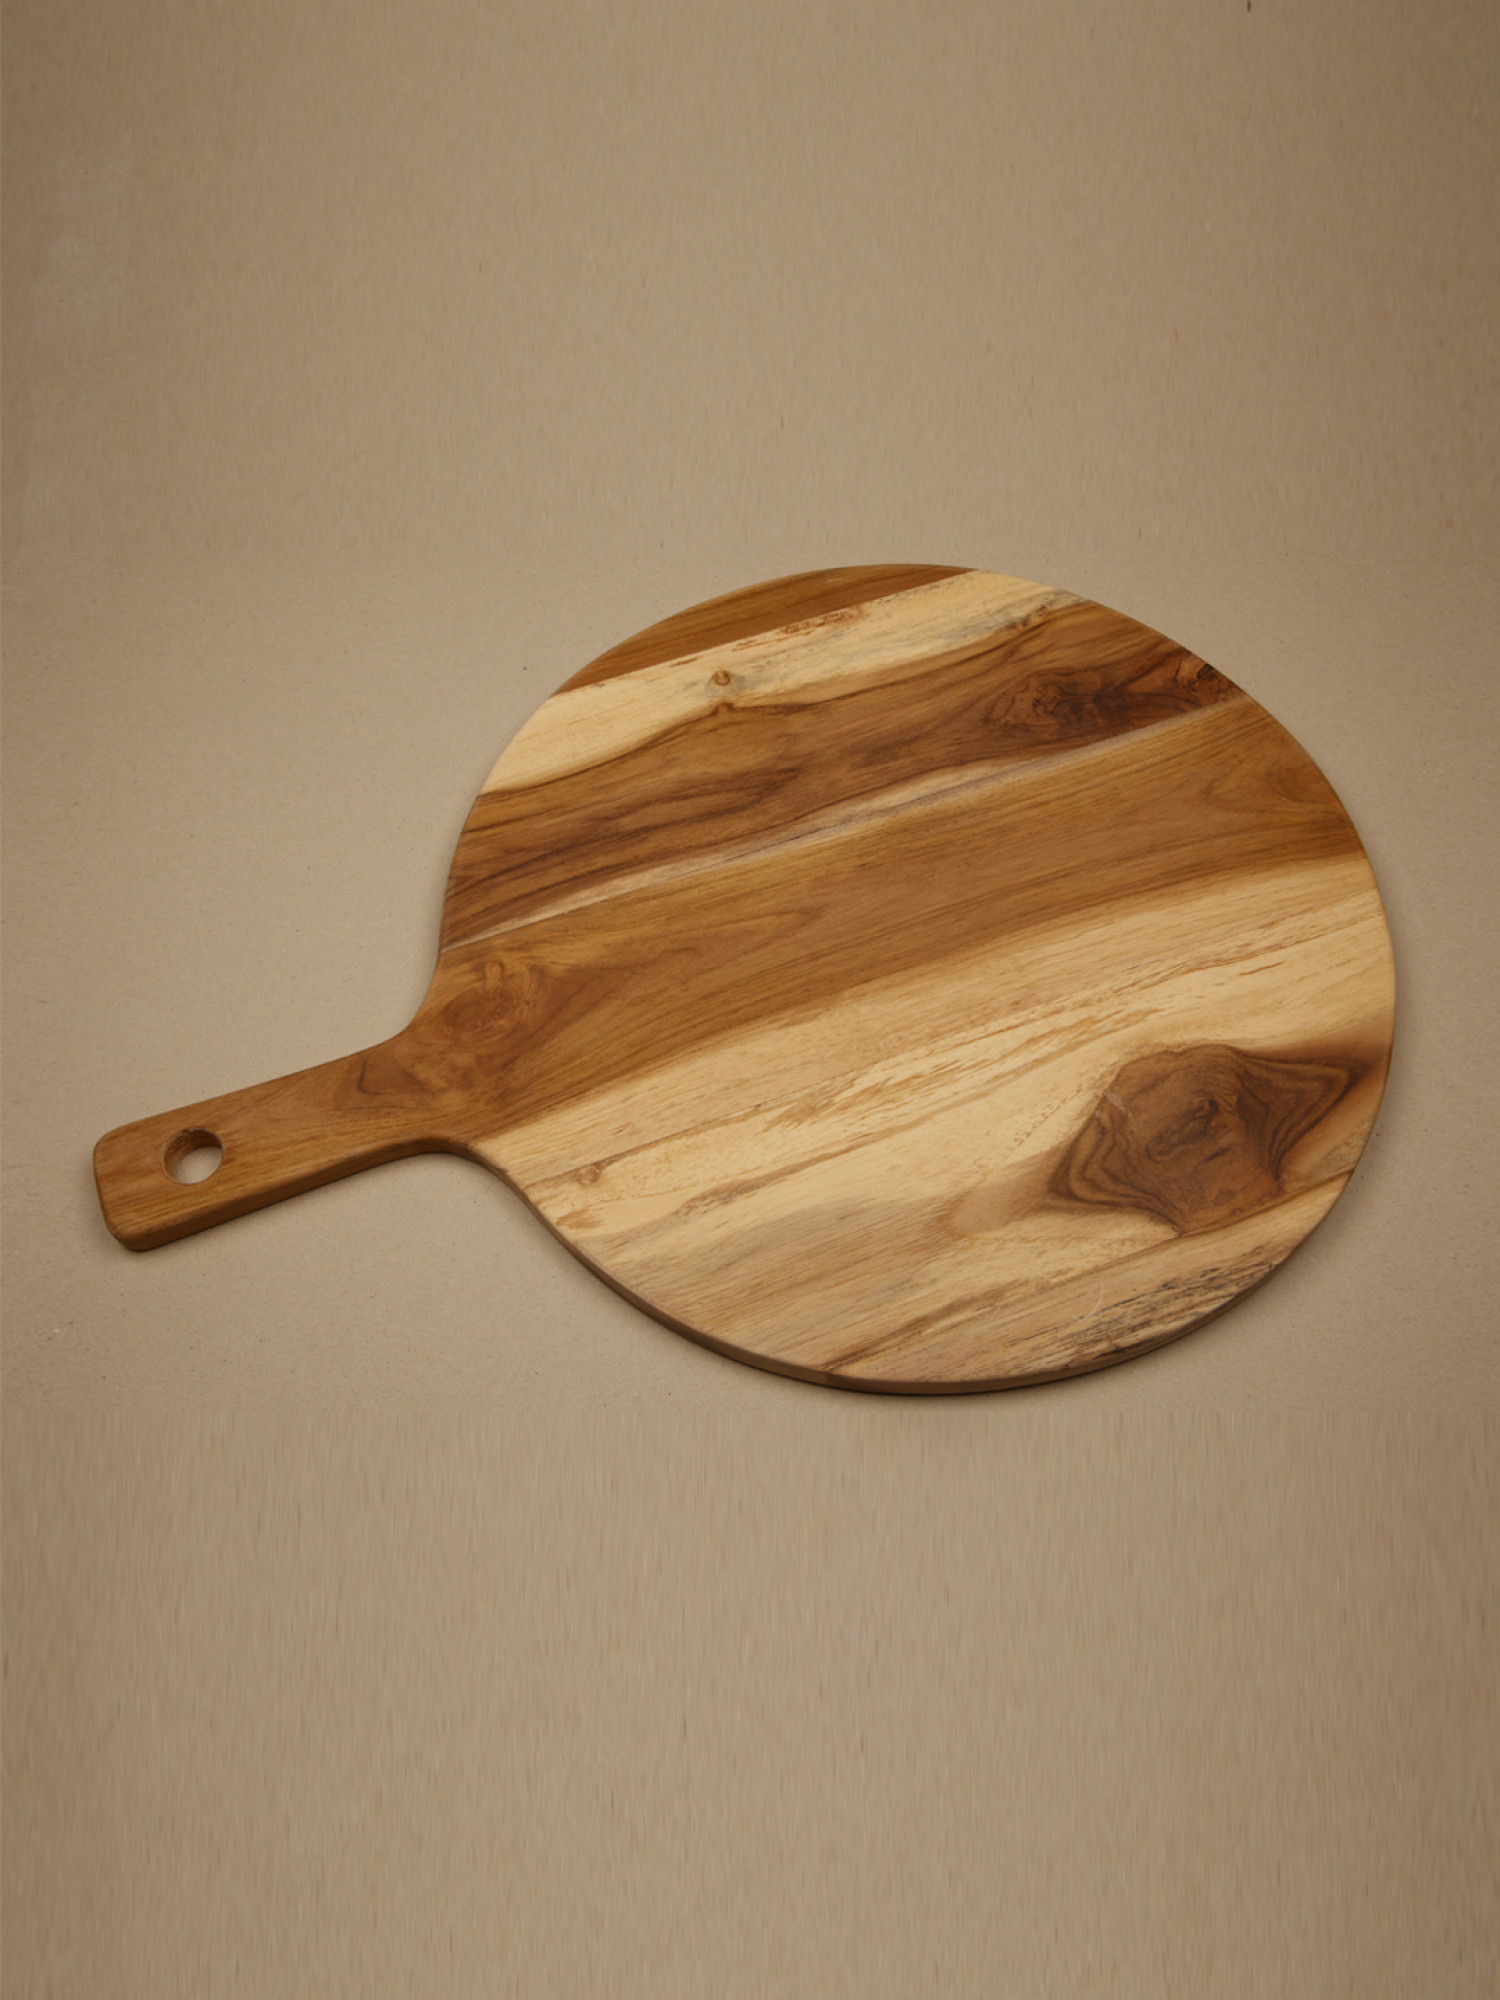 Charcuterie/Chopping/Cutting/Serving Board Made of Teak Wood